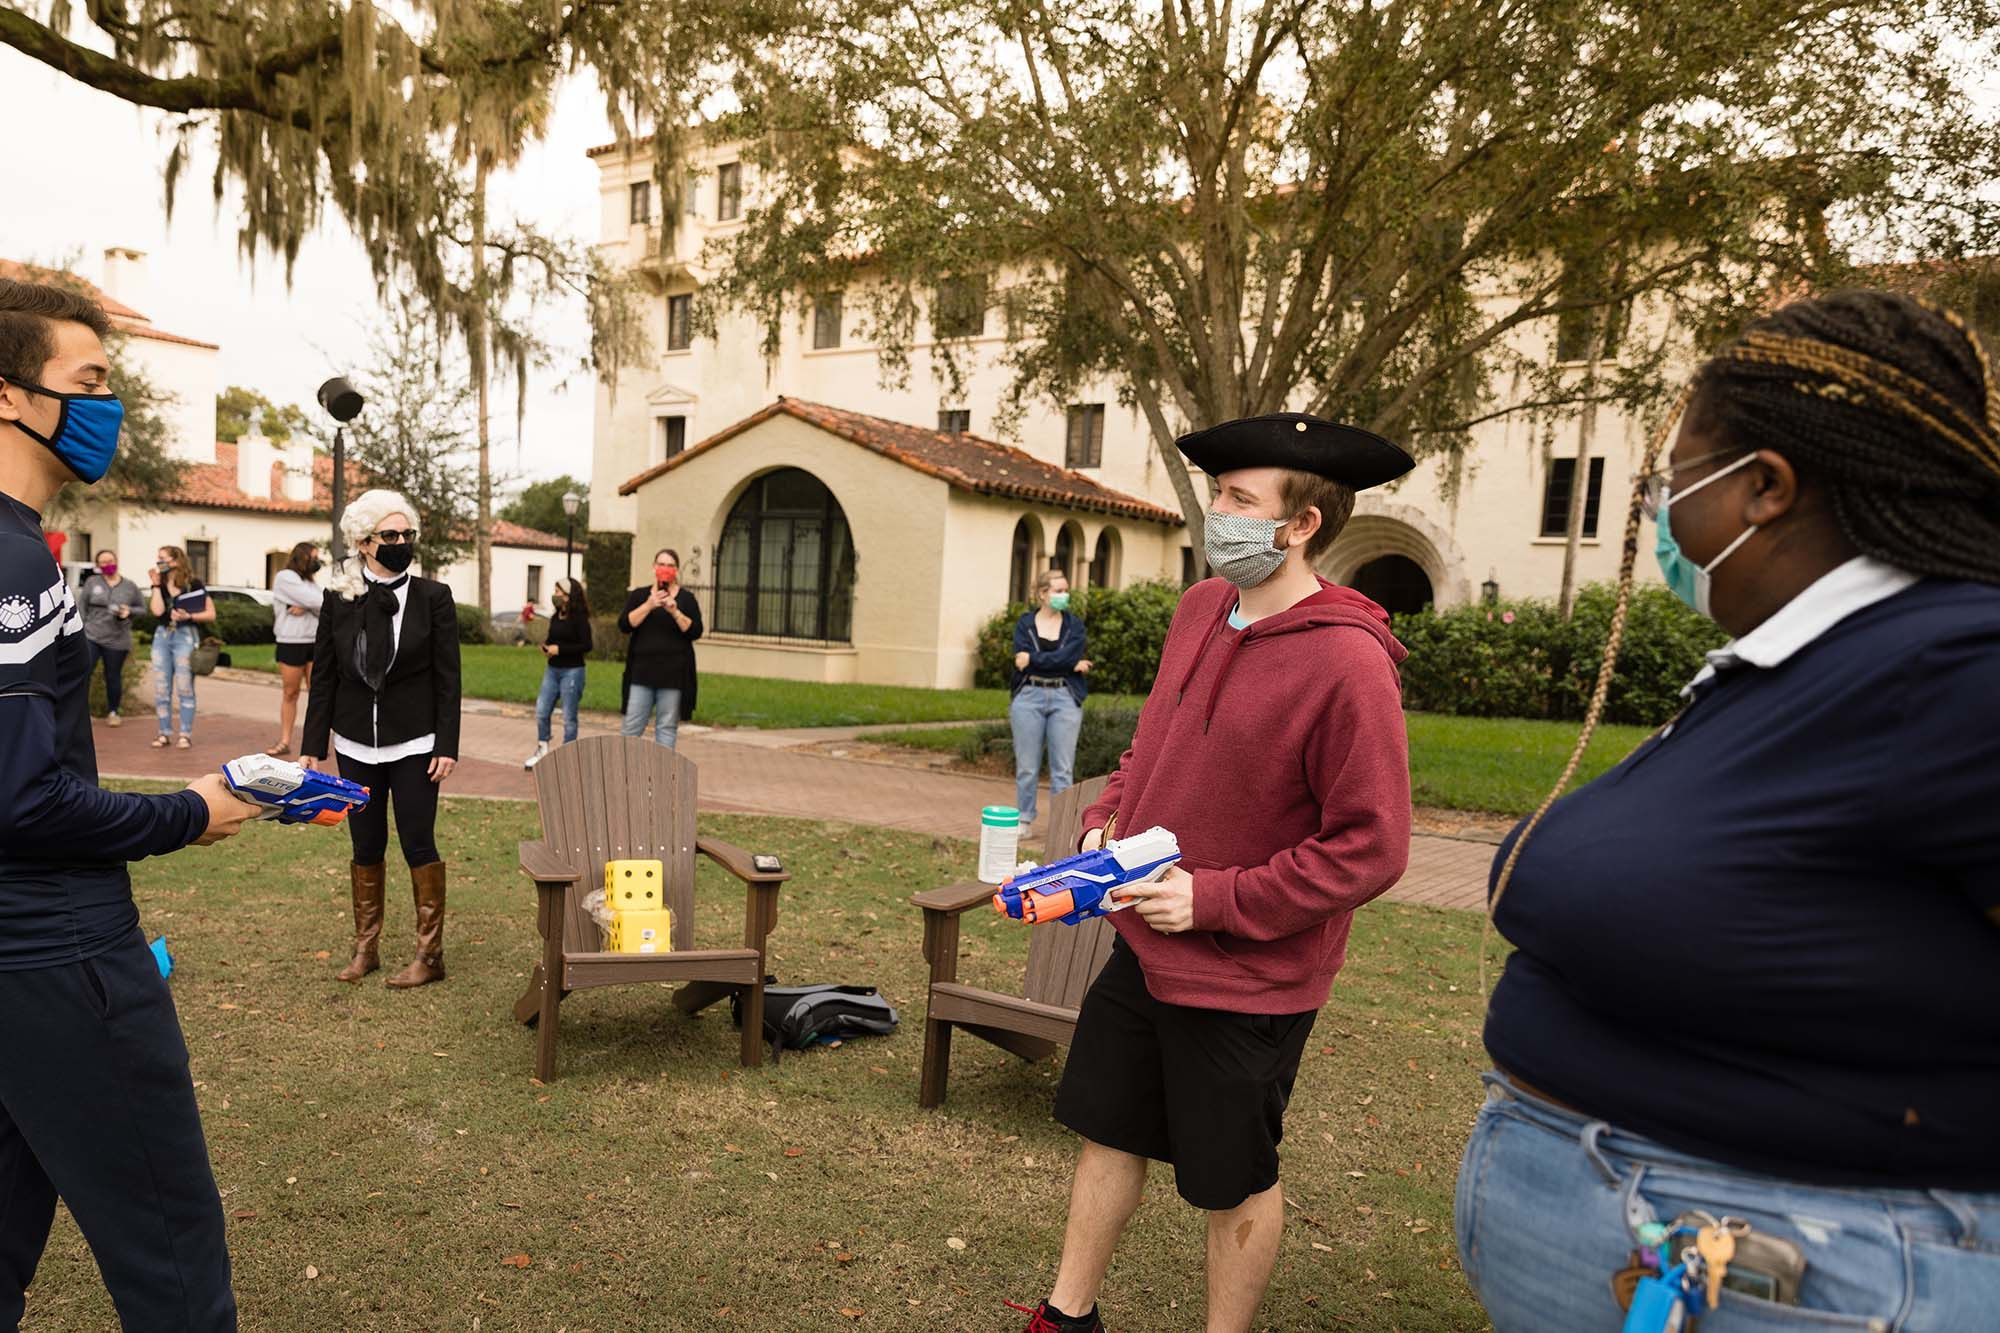 Students in costumes hold nerf guns